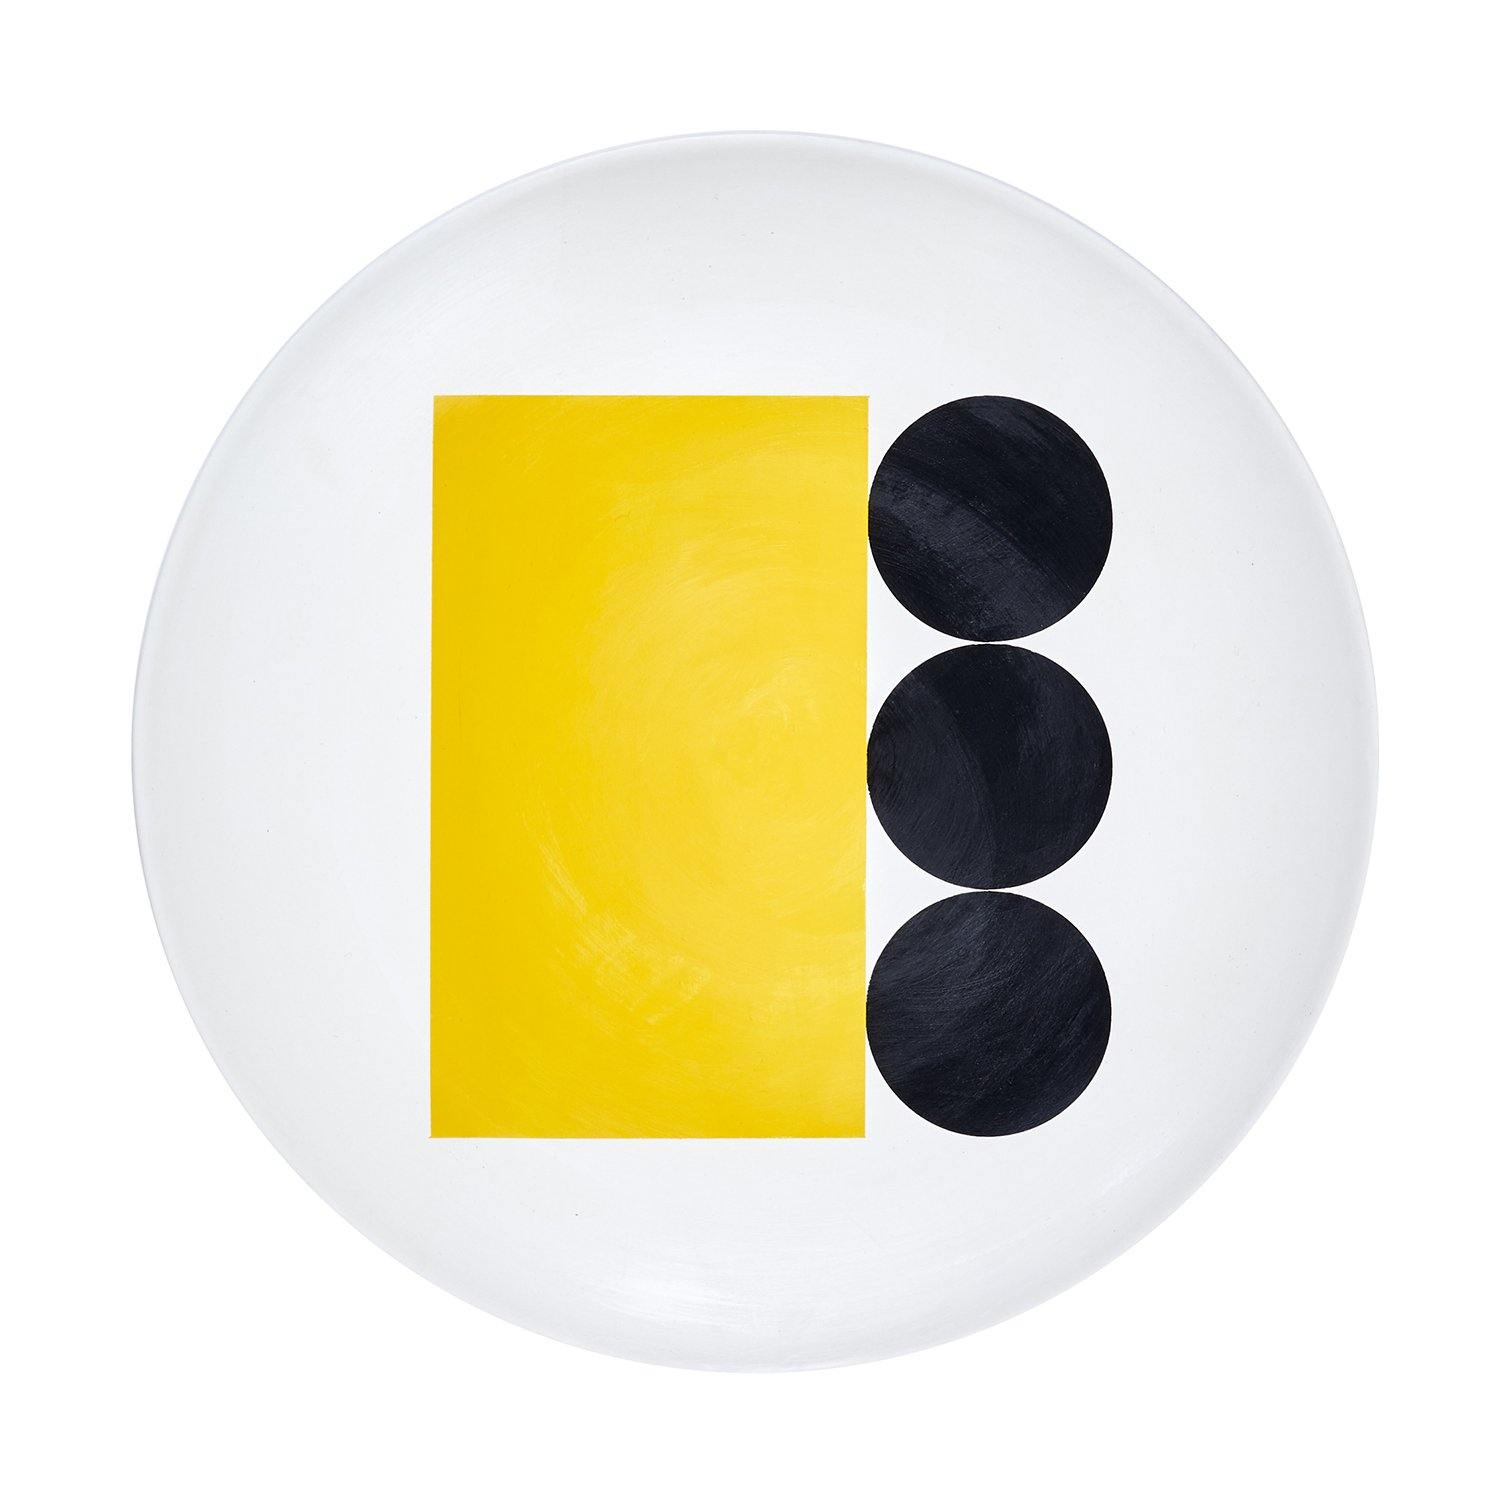 Science Museum Impossible Machines Plate F Yellow/Black 4